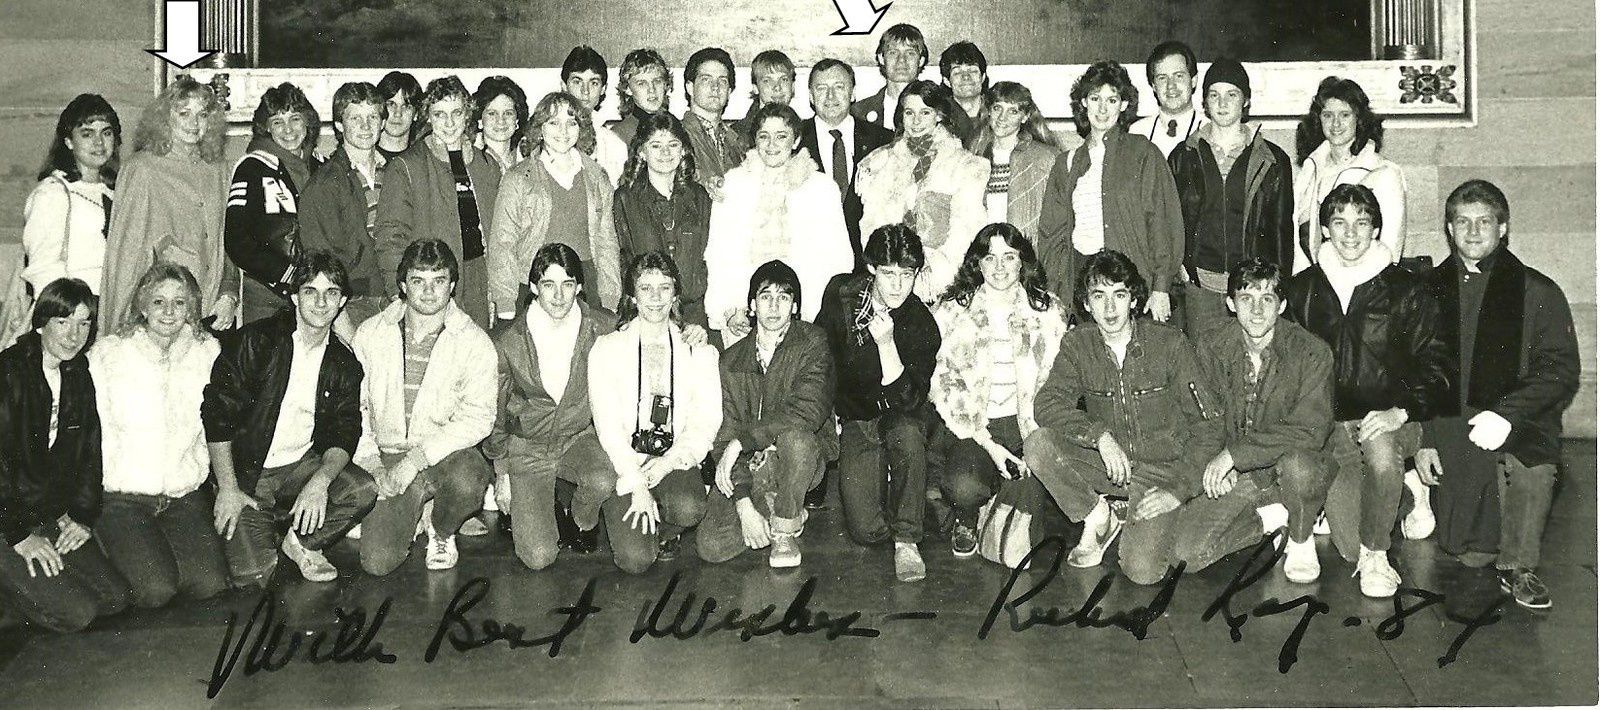 Cours d'art dramatique 1983/84, Northside High School